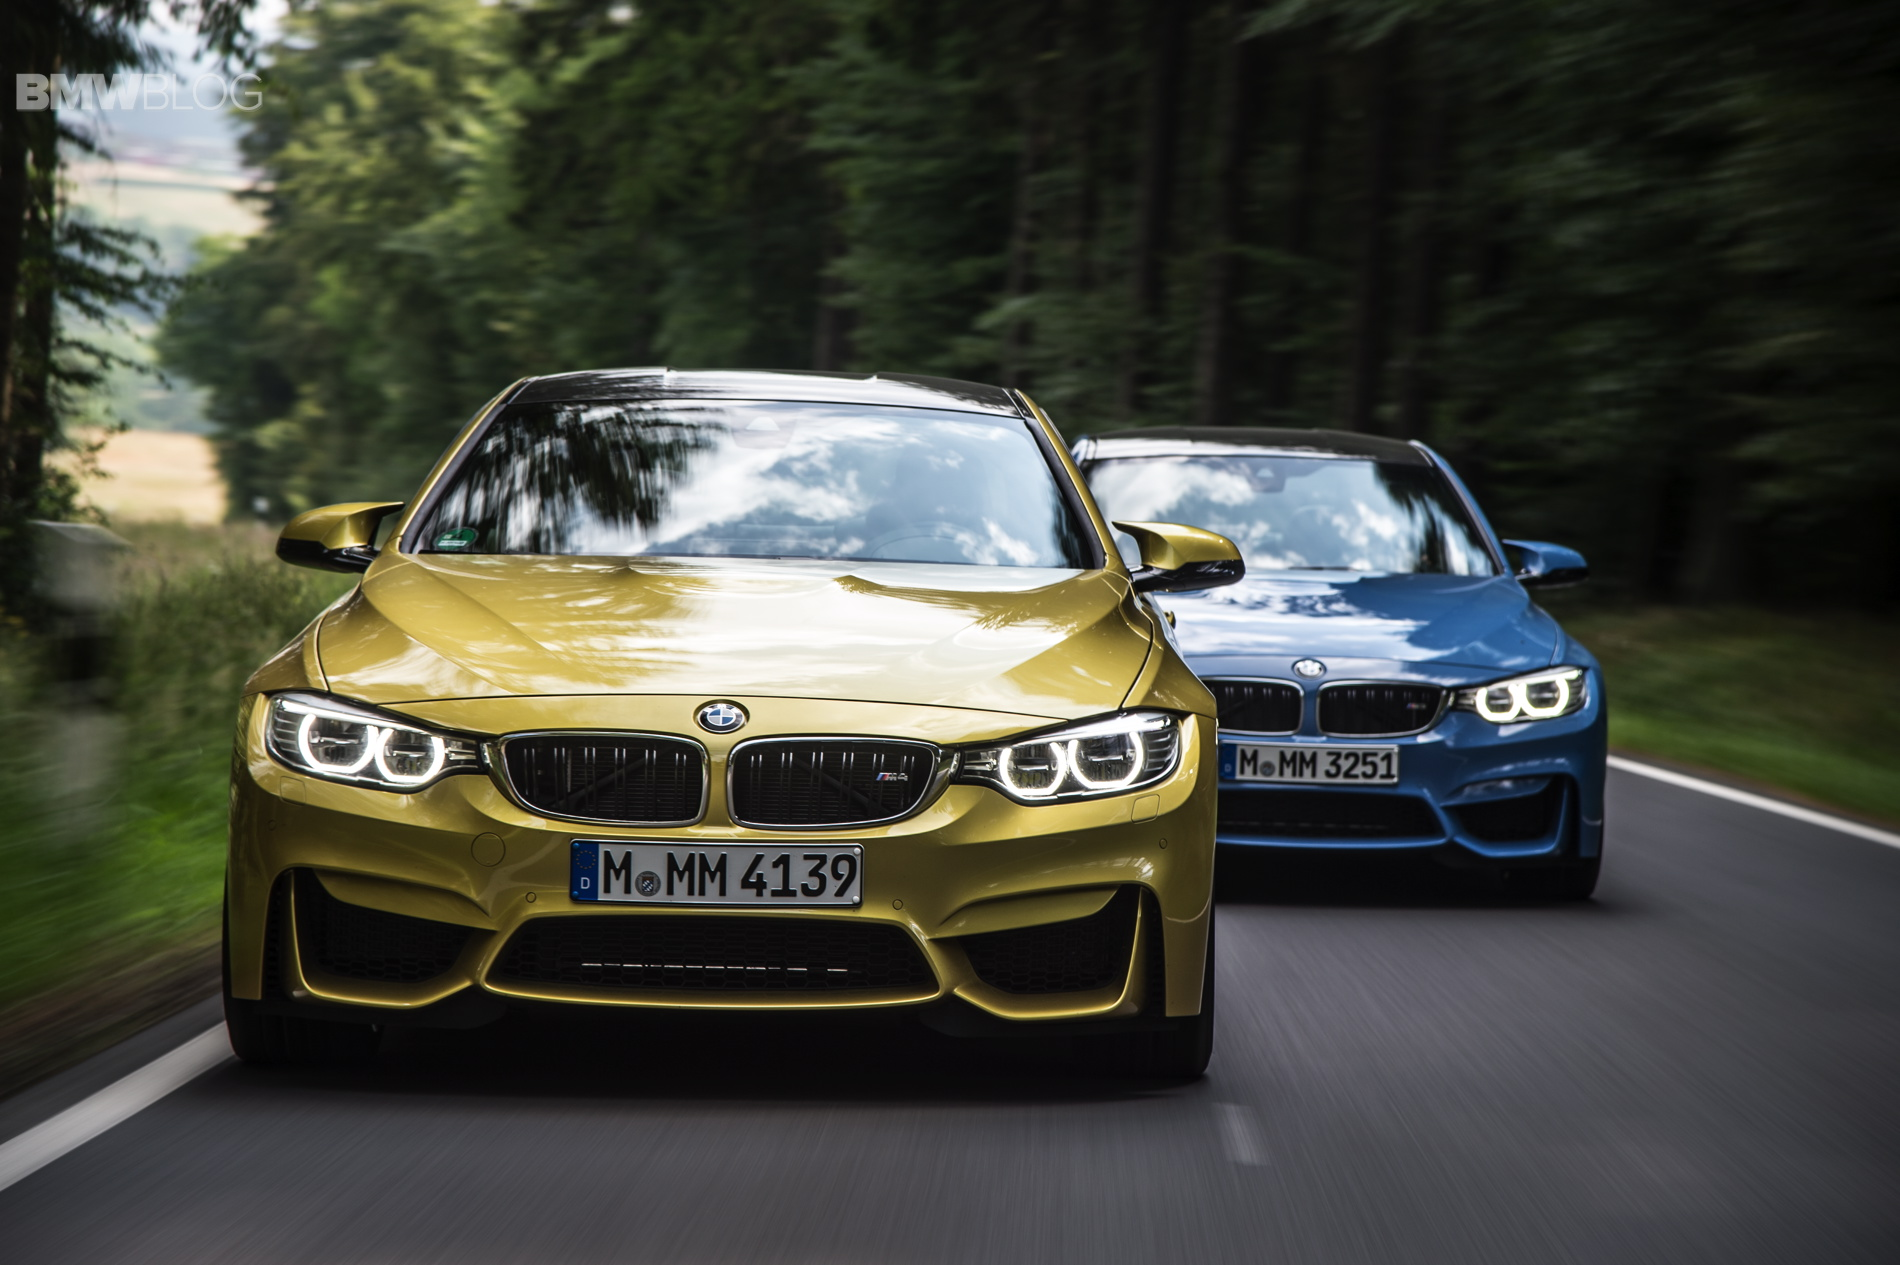 bmw blog - your daily bmw news, photos, videos and test drives